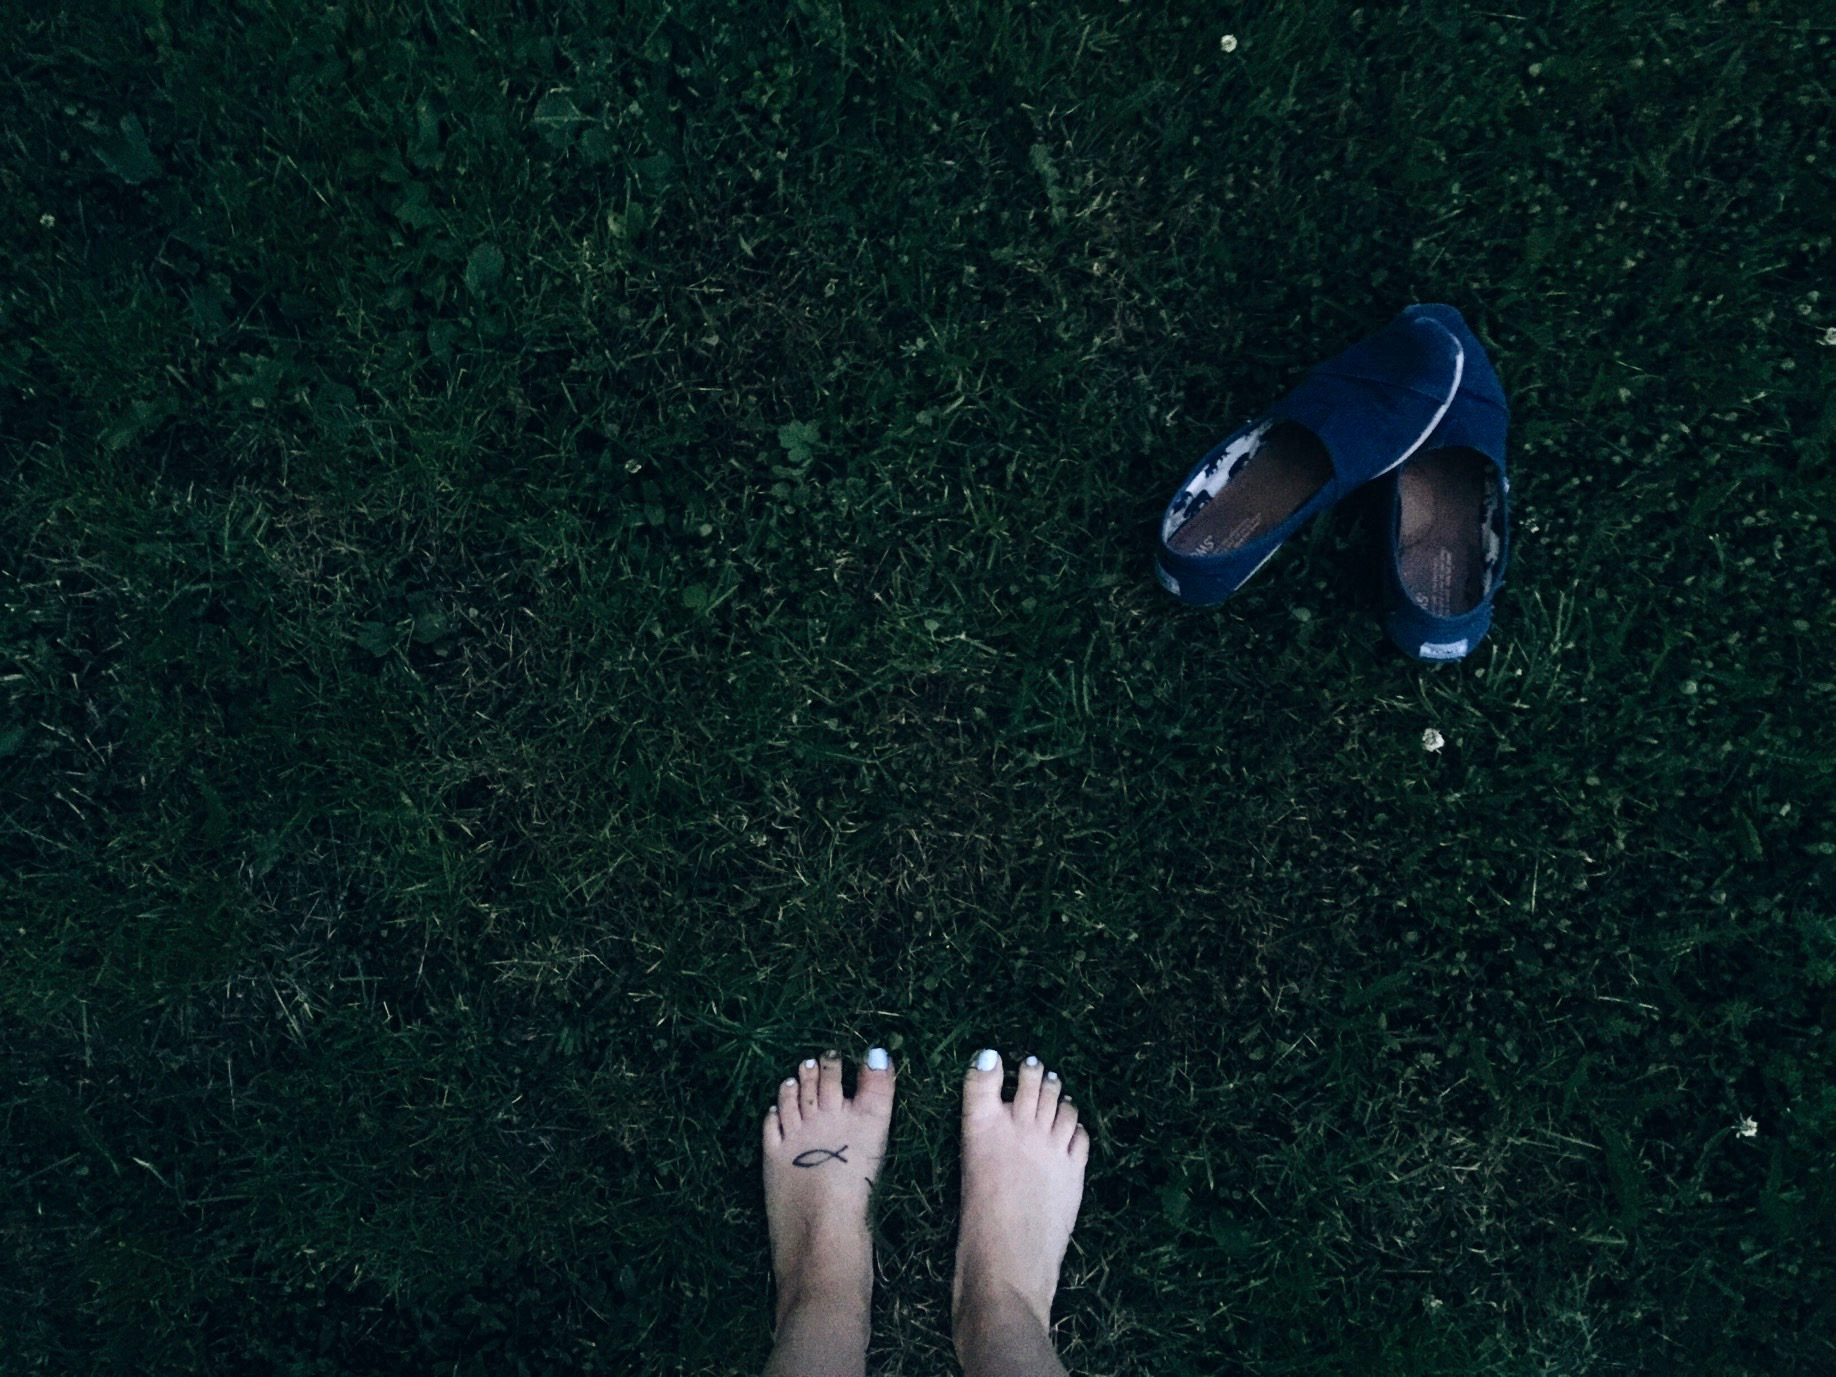 moon feet grounding earthing